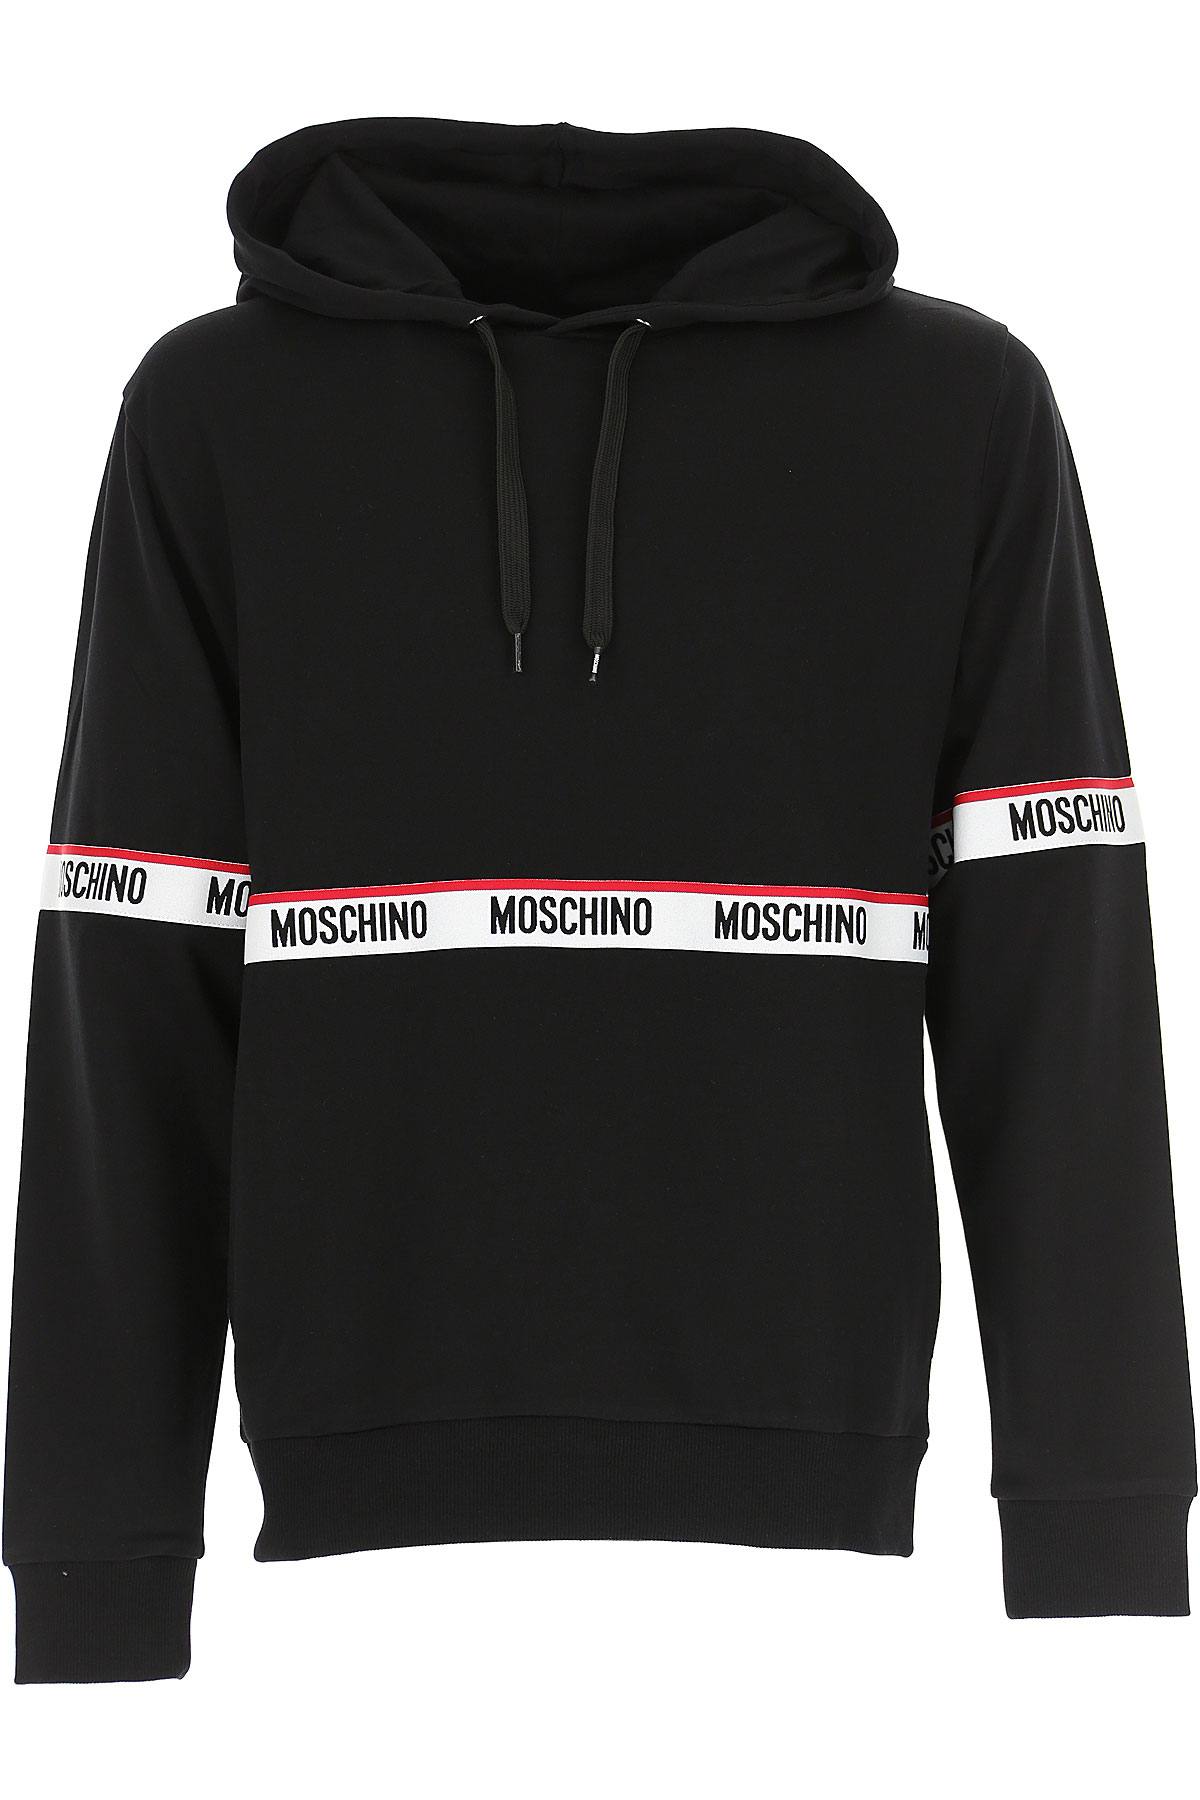 Moschino Men's Sportswear for Gym Workouts and Running On Sale, Black, Cotton, 2019, L M S